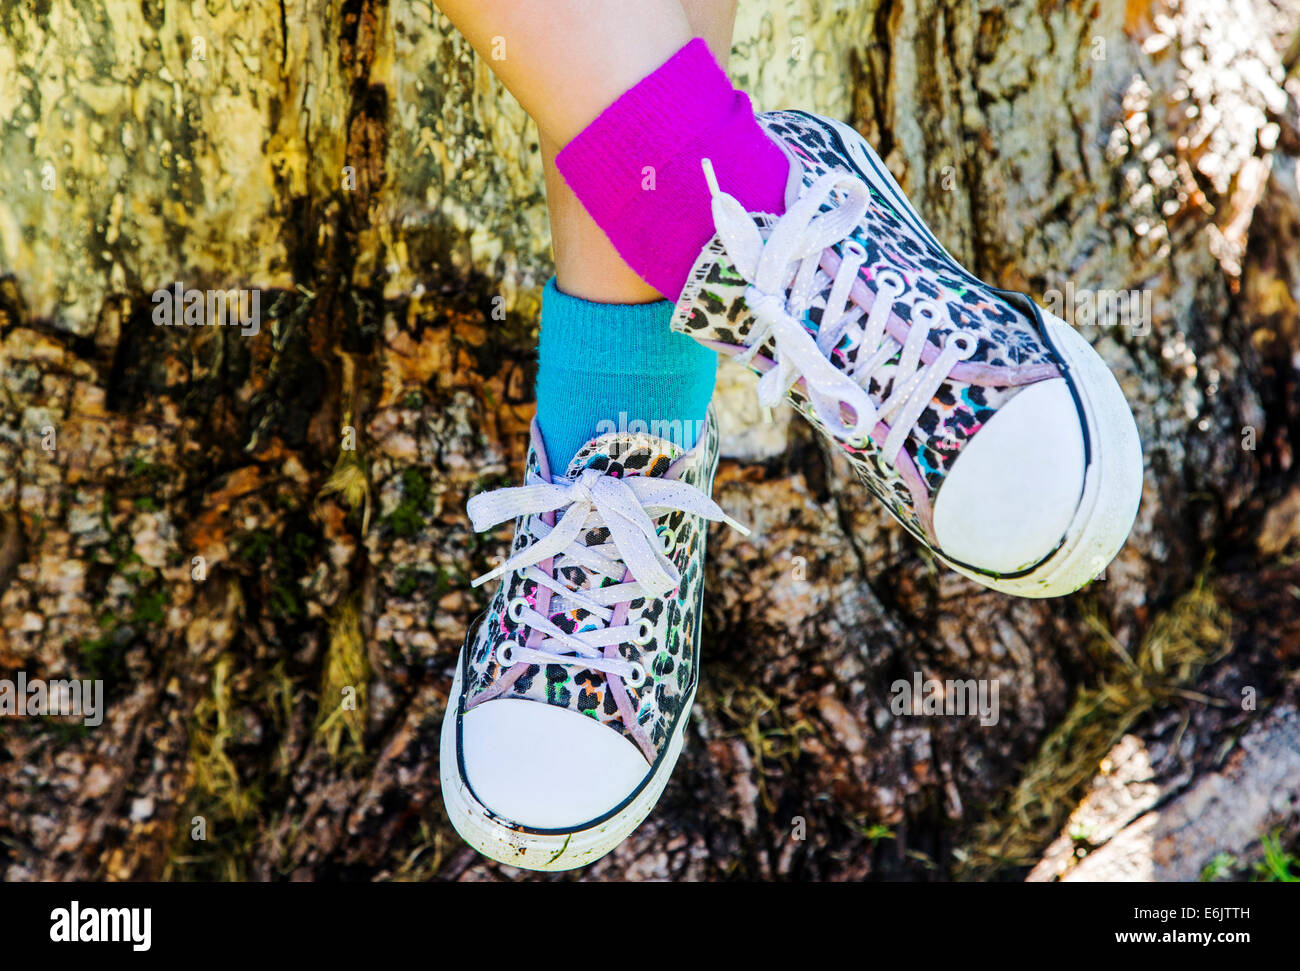 Photograph of seven year old girl's colorful sneakers and two different colors of socks - Stock Image